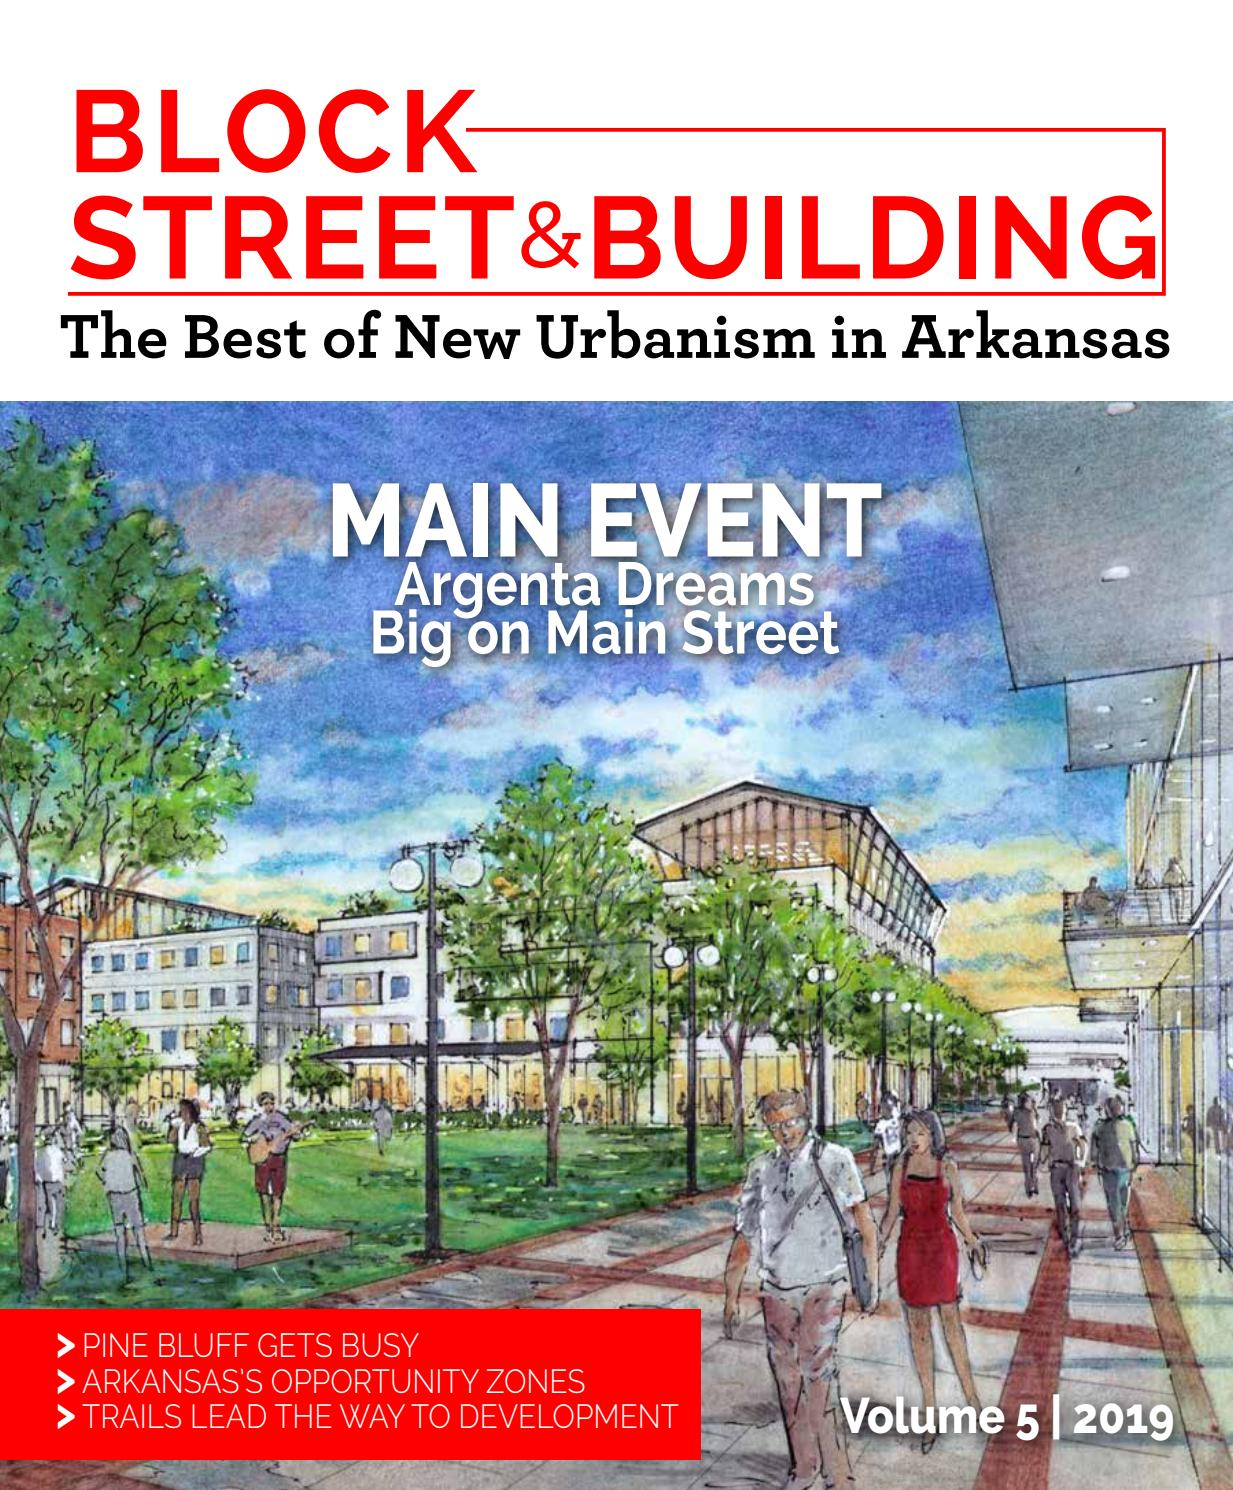 Block, Street & Building Volume 5 | 2019 by Arkansas Times